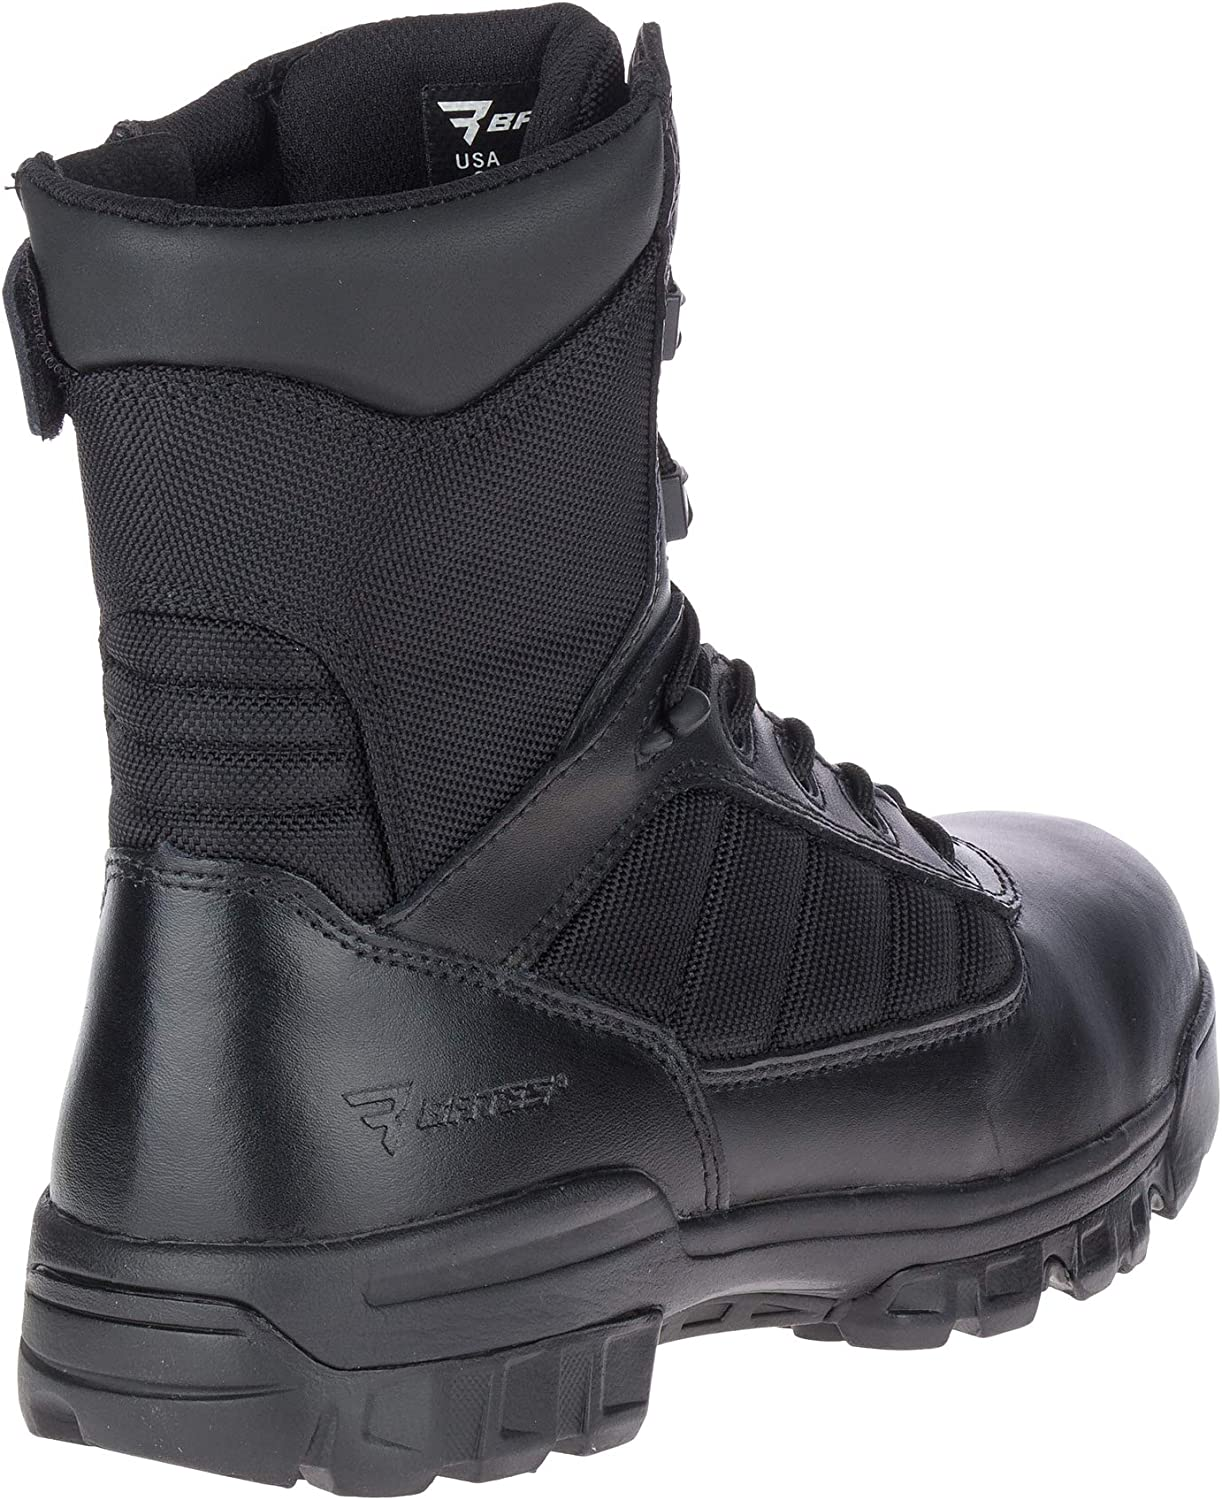 Bates Mens 8 Ultralite Tactical Sport Side Zip Military Boot